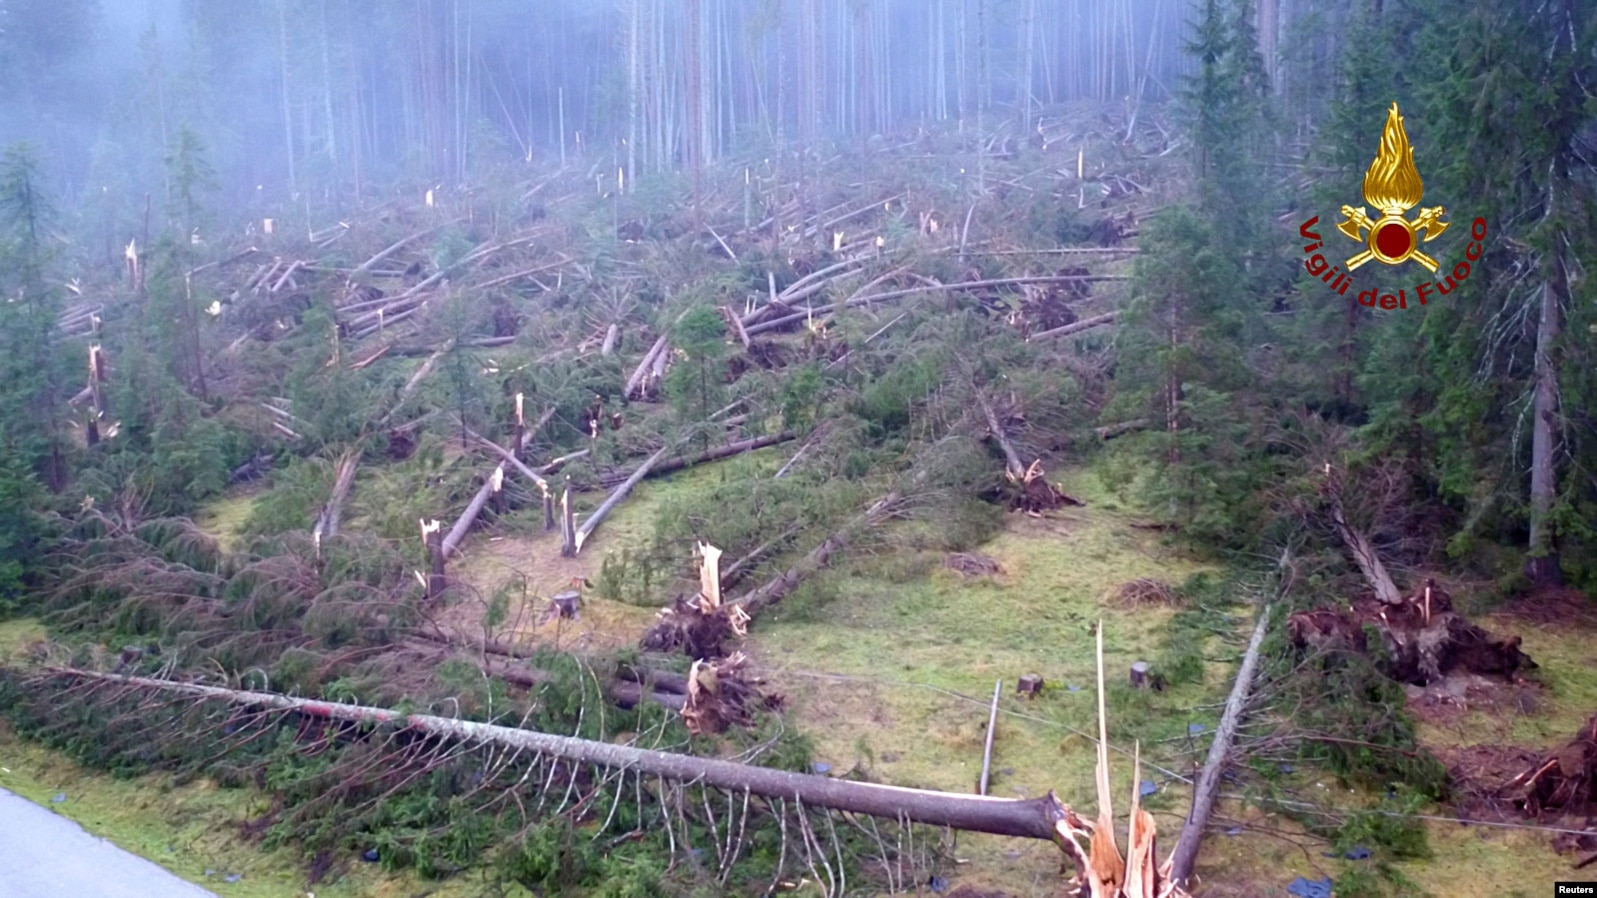 Italian Storms Claim 17th Life, 14 Million Trees